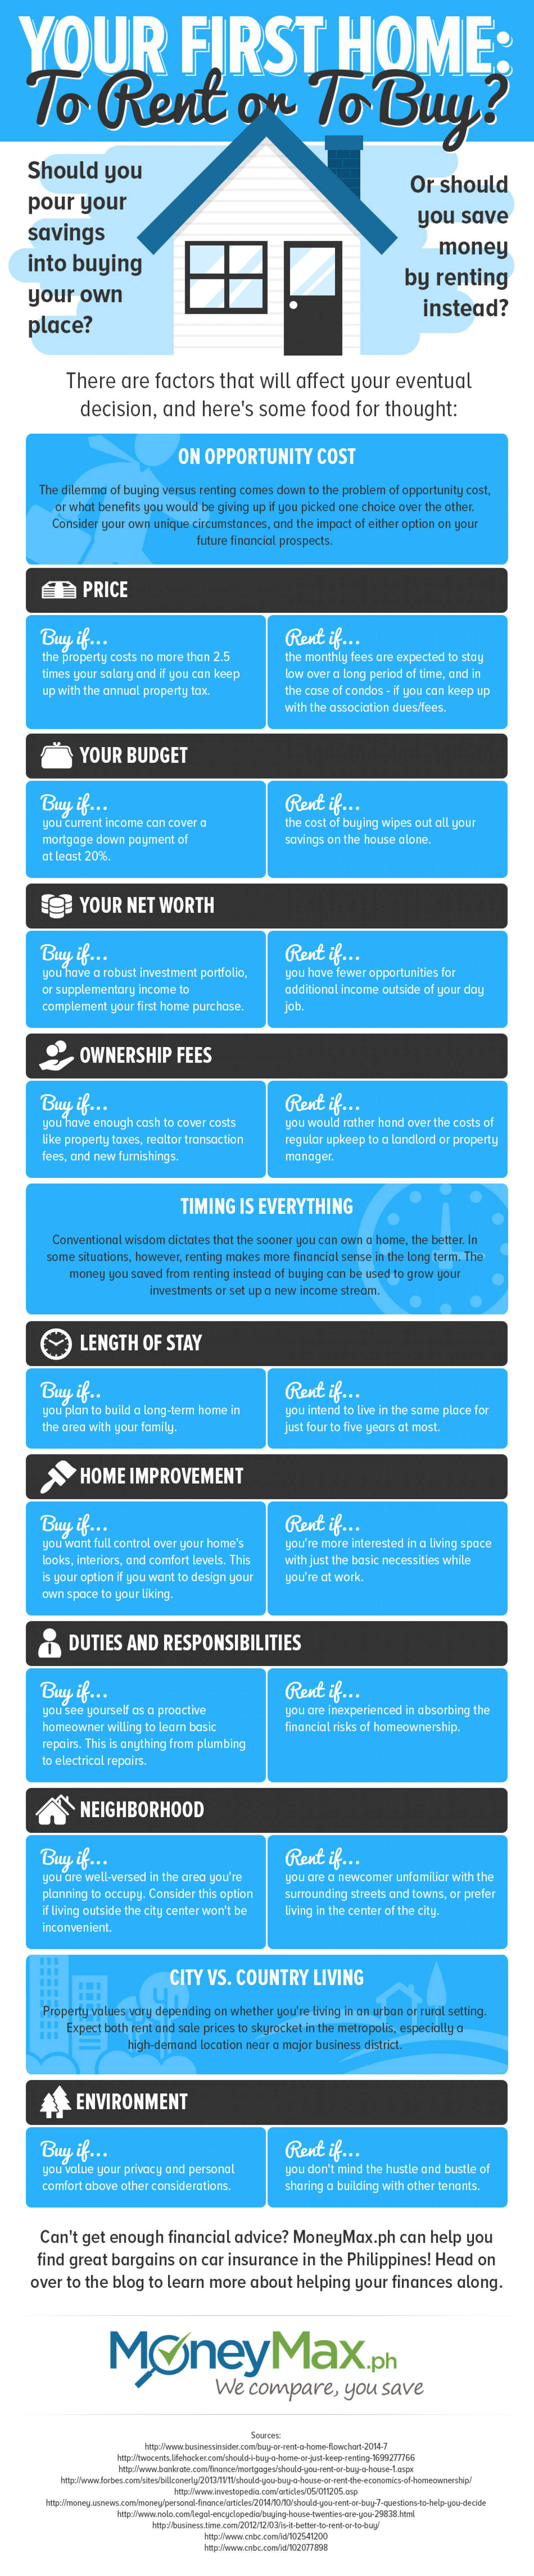 Should You Buy or Rent Your First Home? Infographic